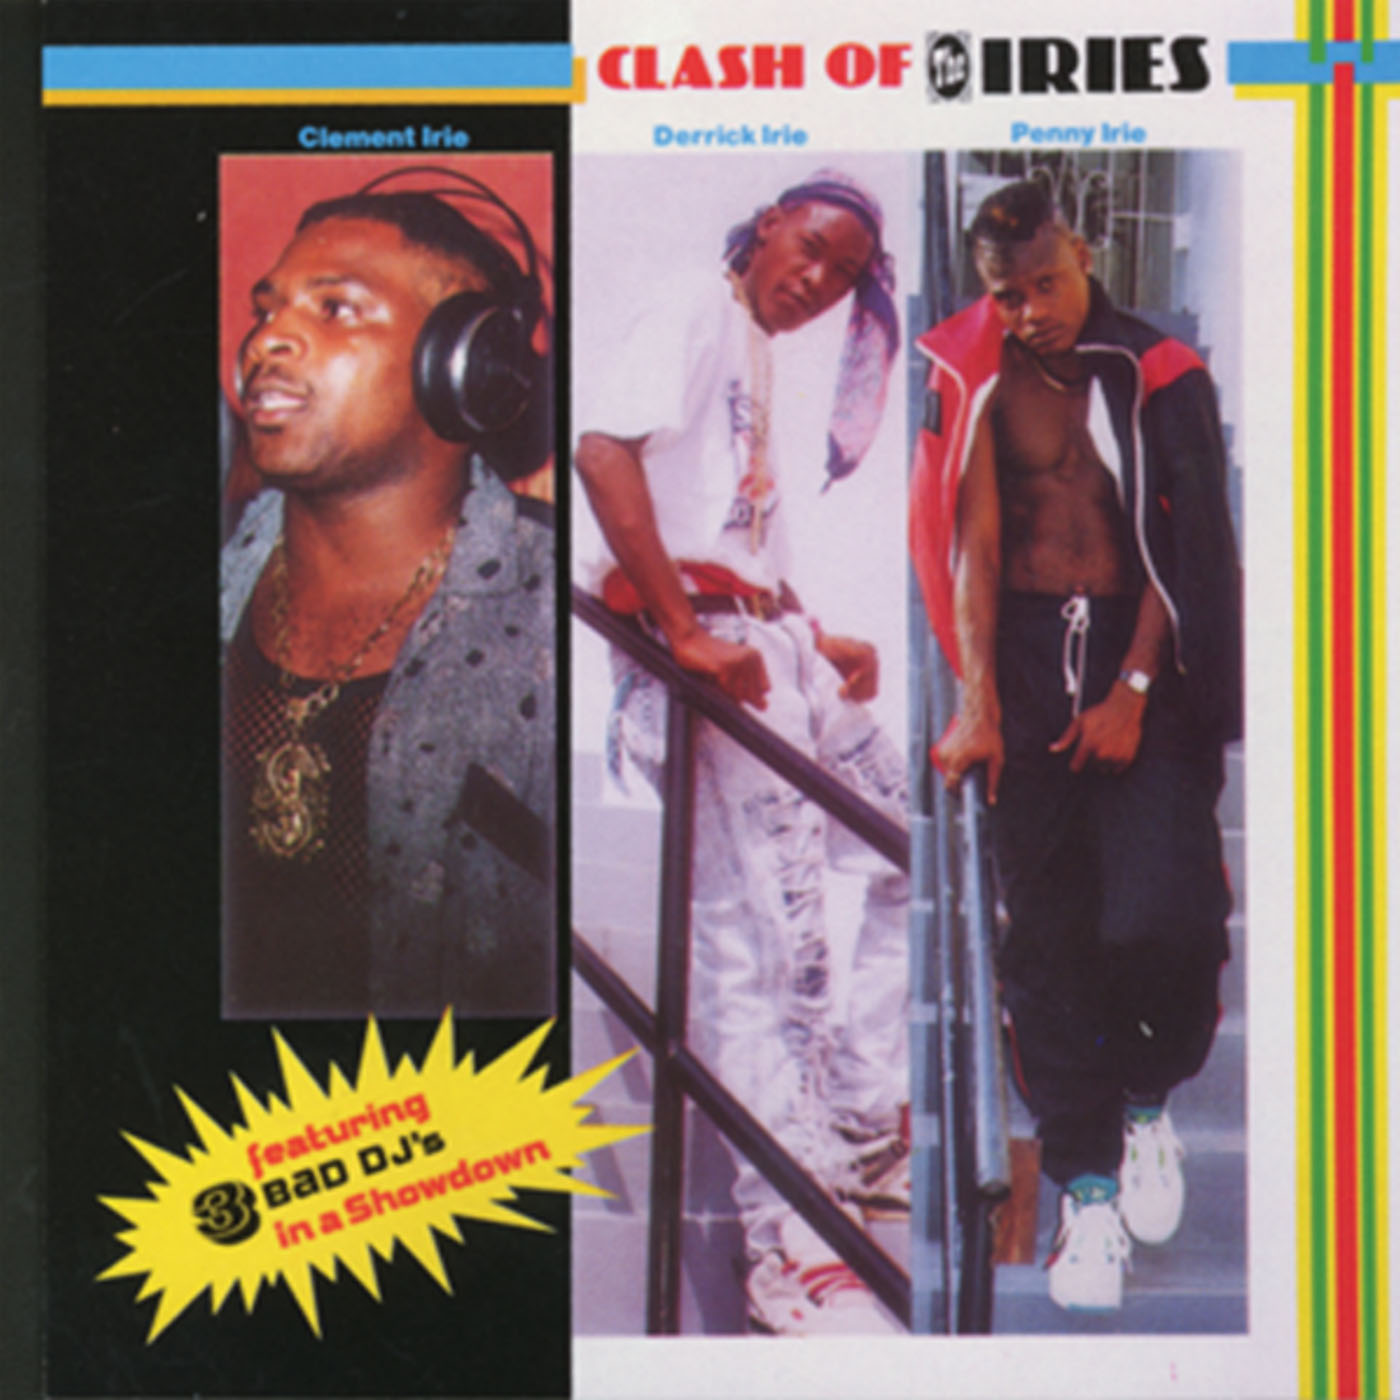 Clement Irie, Derrick Irie, Penny Irie – Clash Of The Iries